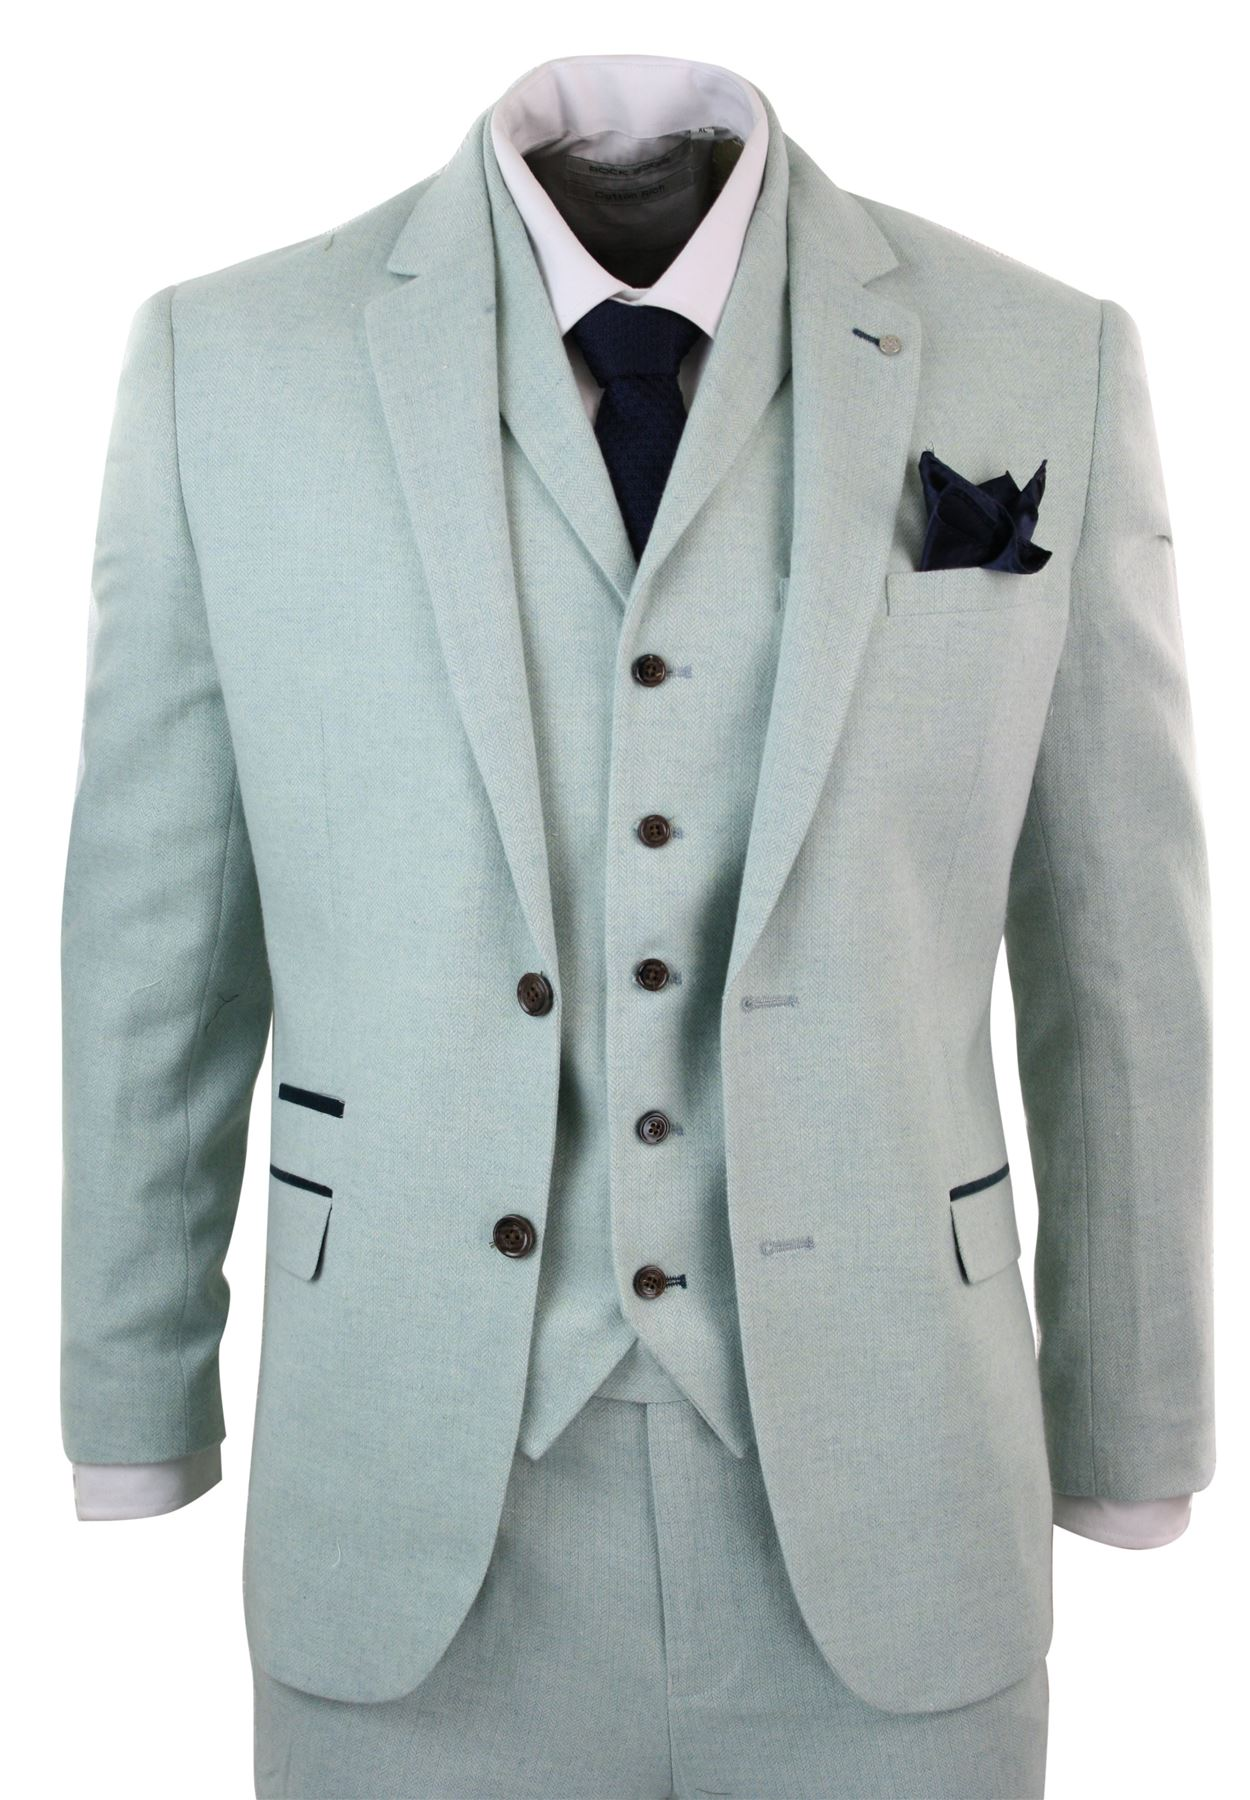 Mens Herringbone Tweed 3 Piece Tailored Fit Suit Light Grey Green ...